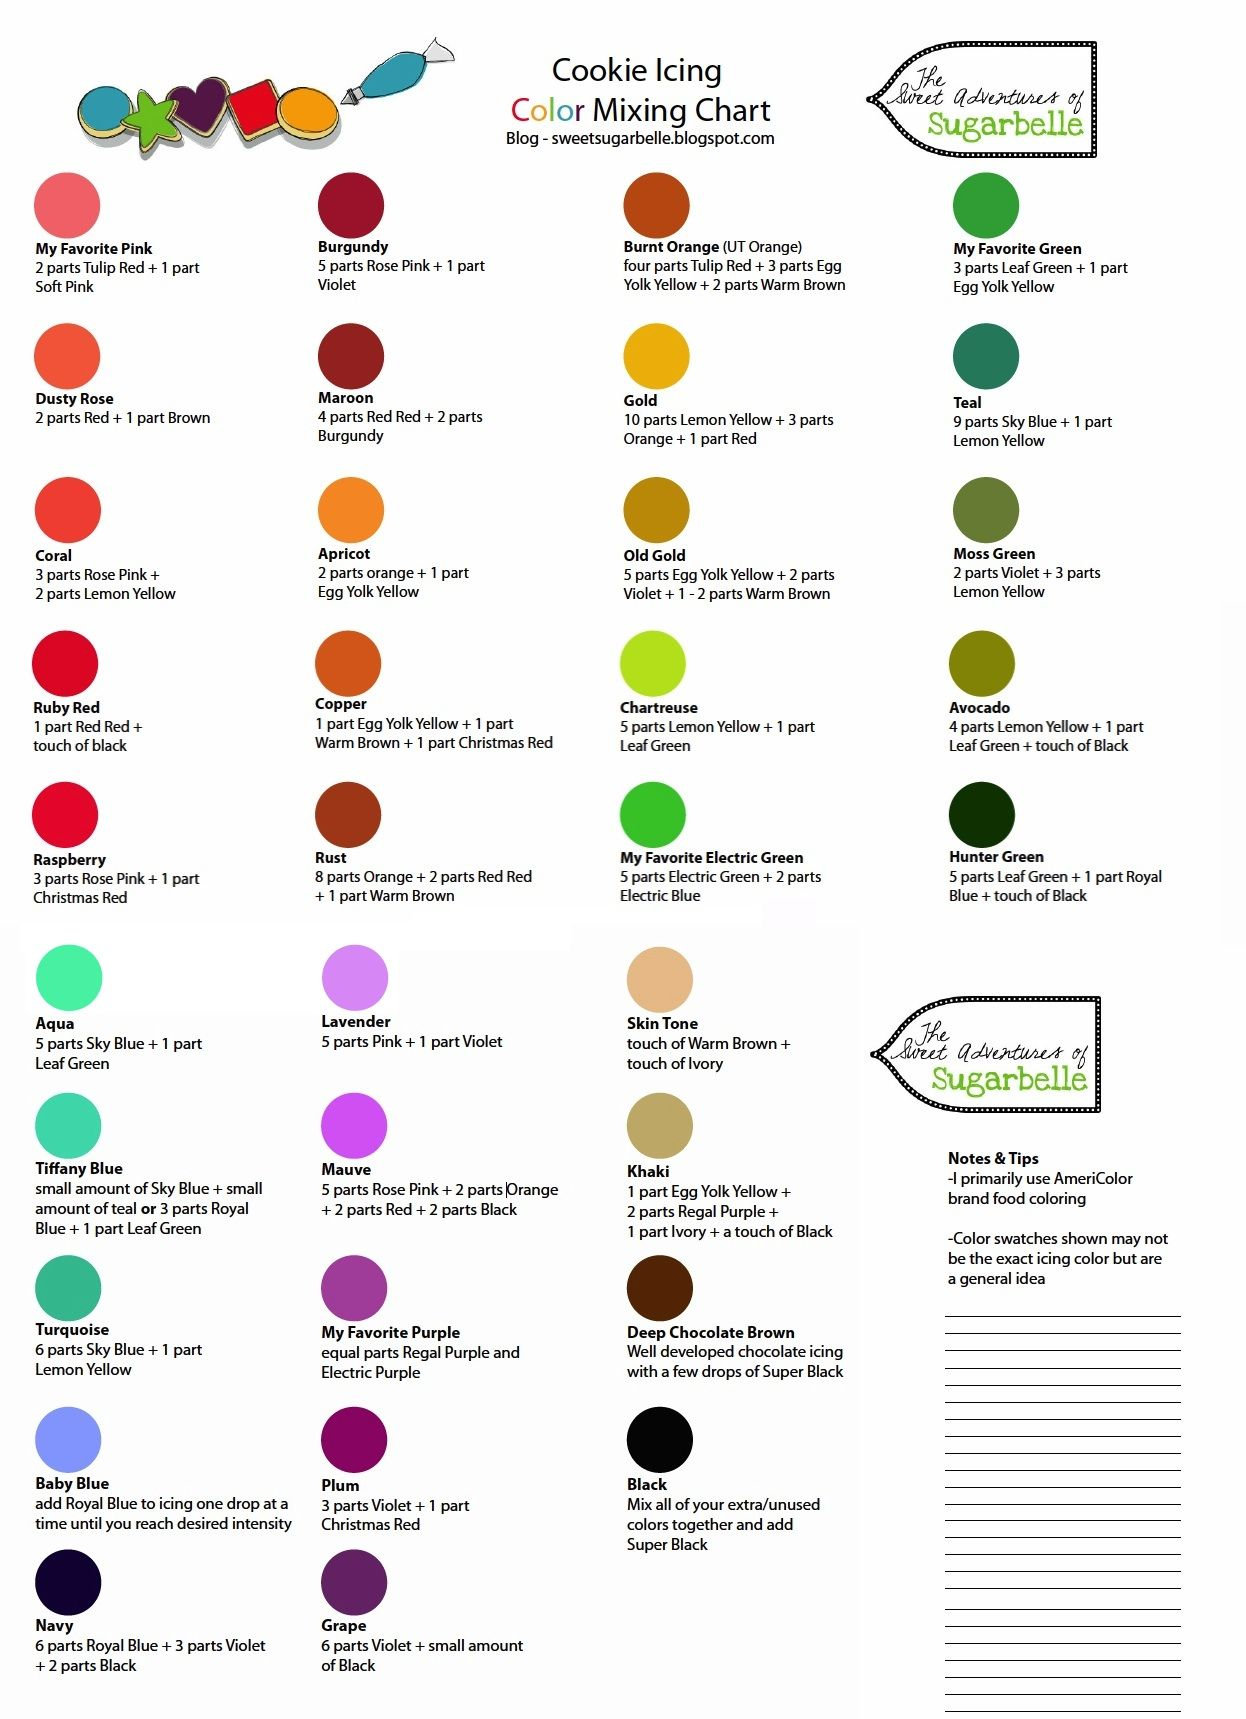 Cookie icing color mixing chart also wilton food coloring have fondant already colored you can rh pinterest